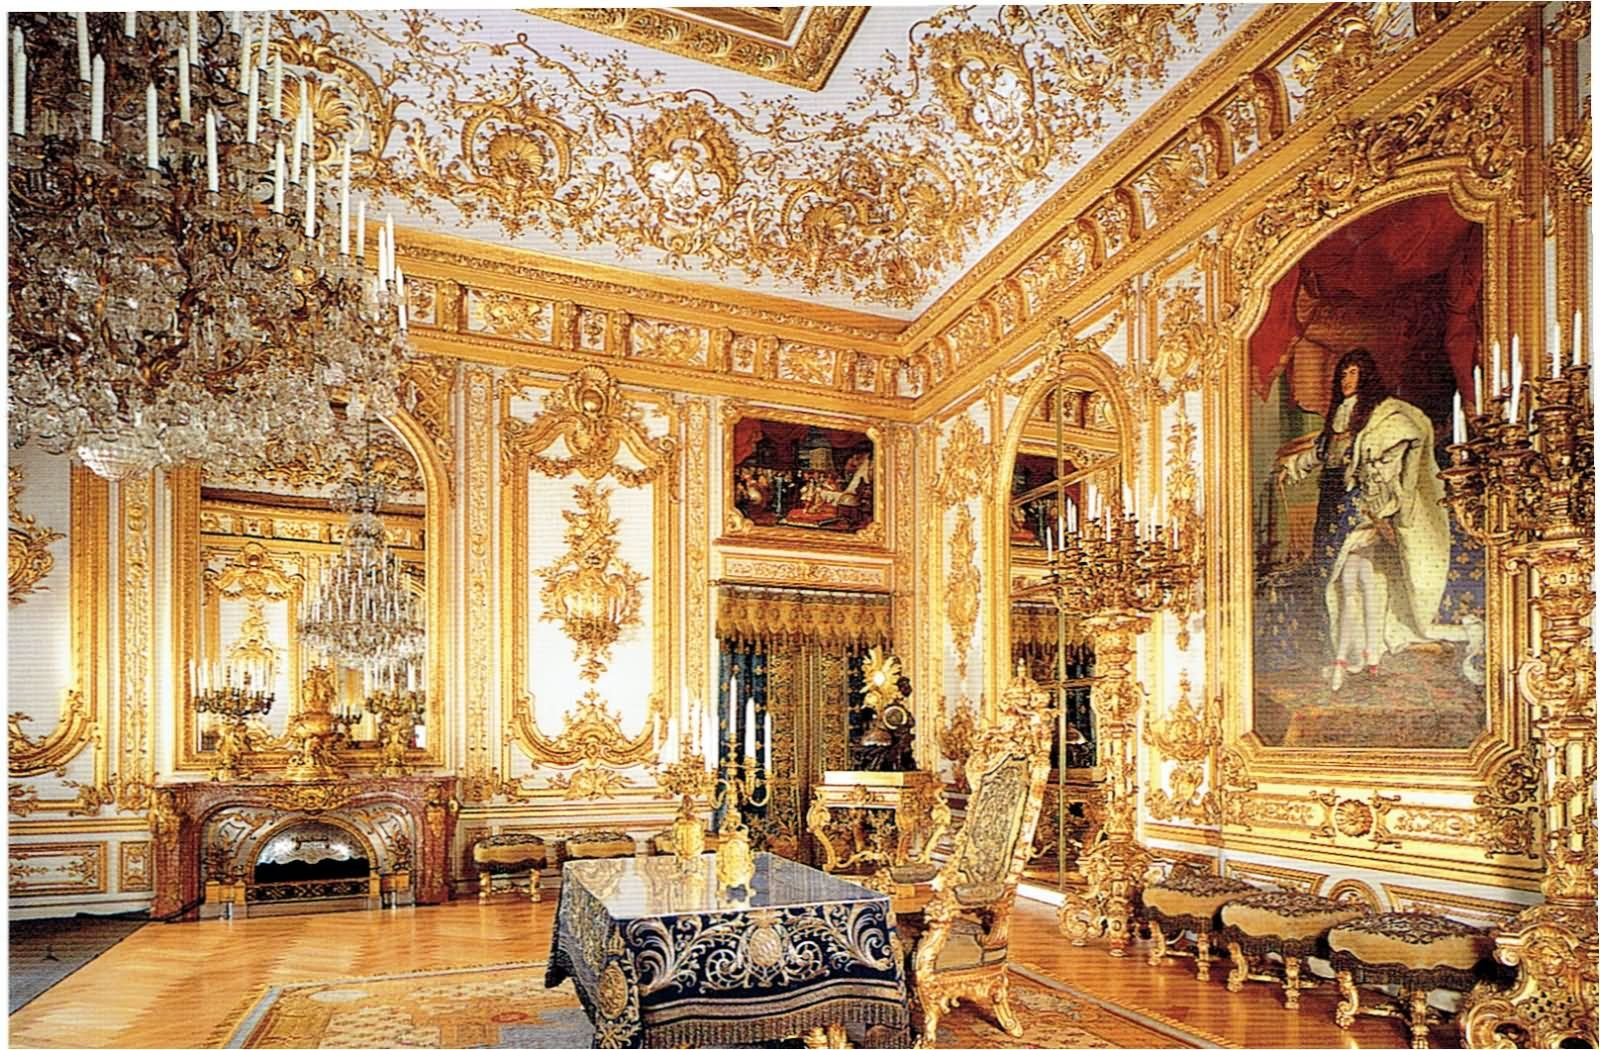 Schloss Linderhof Castle 30 Most Beautiful Interior Pictures Of The Linderhof Palace Palace Interior Castles Interior Beautiful Interiors